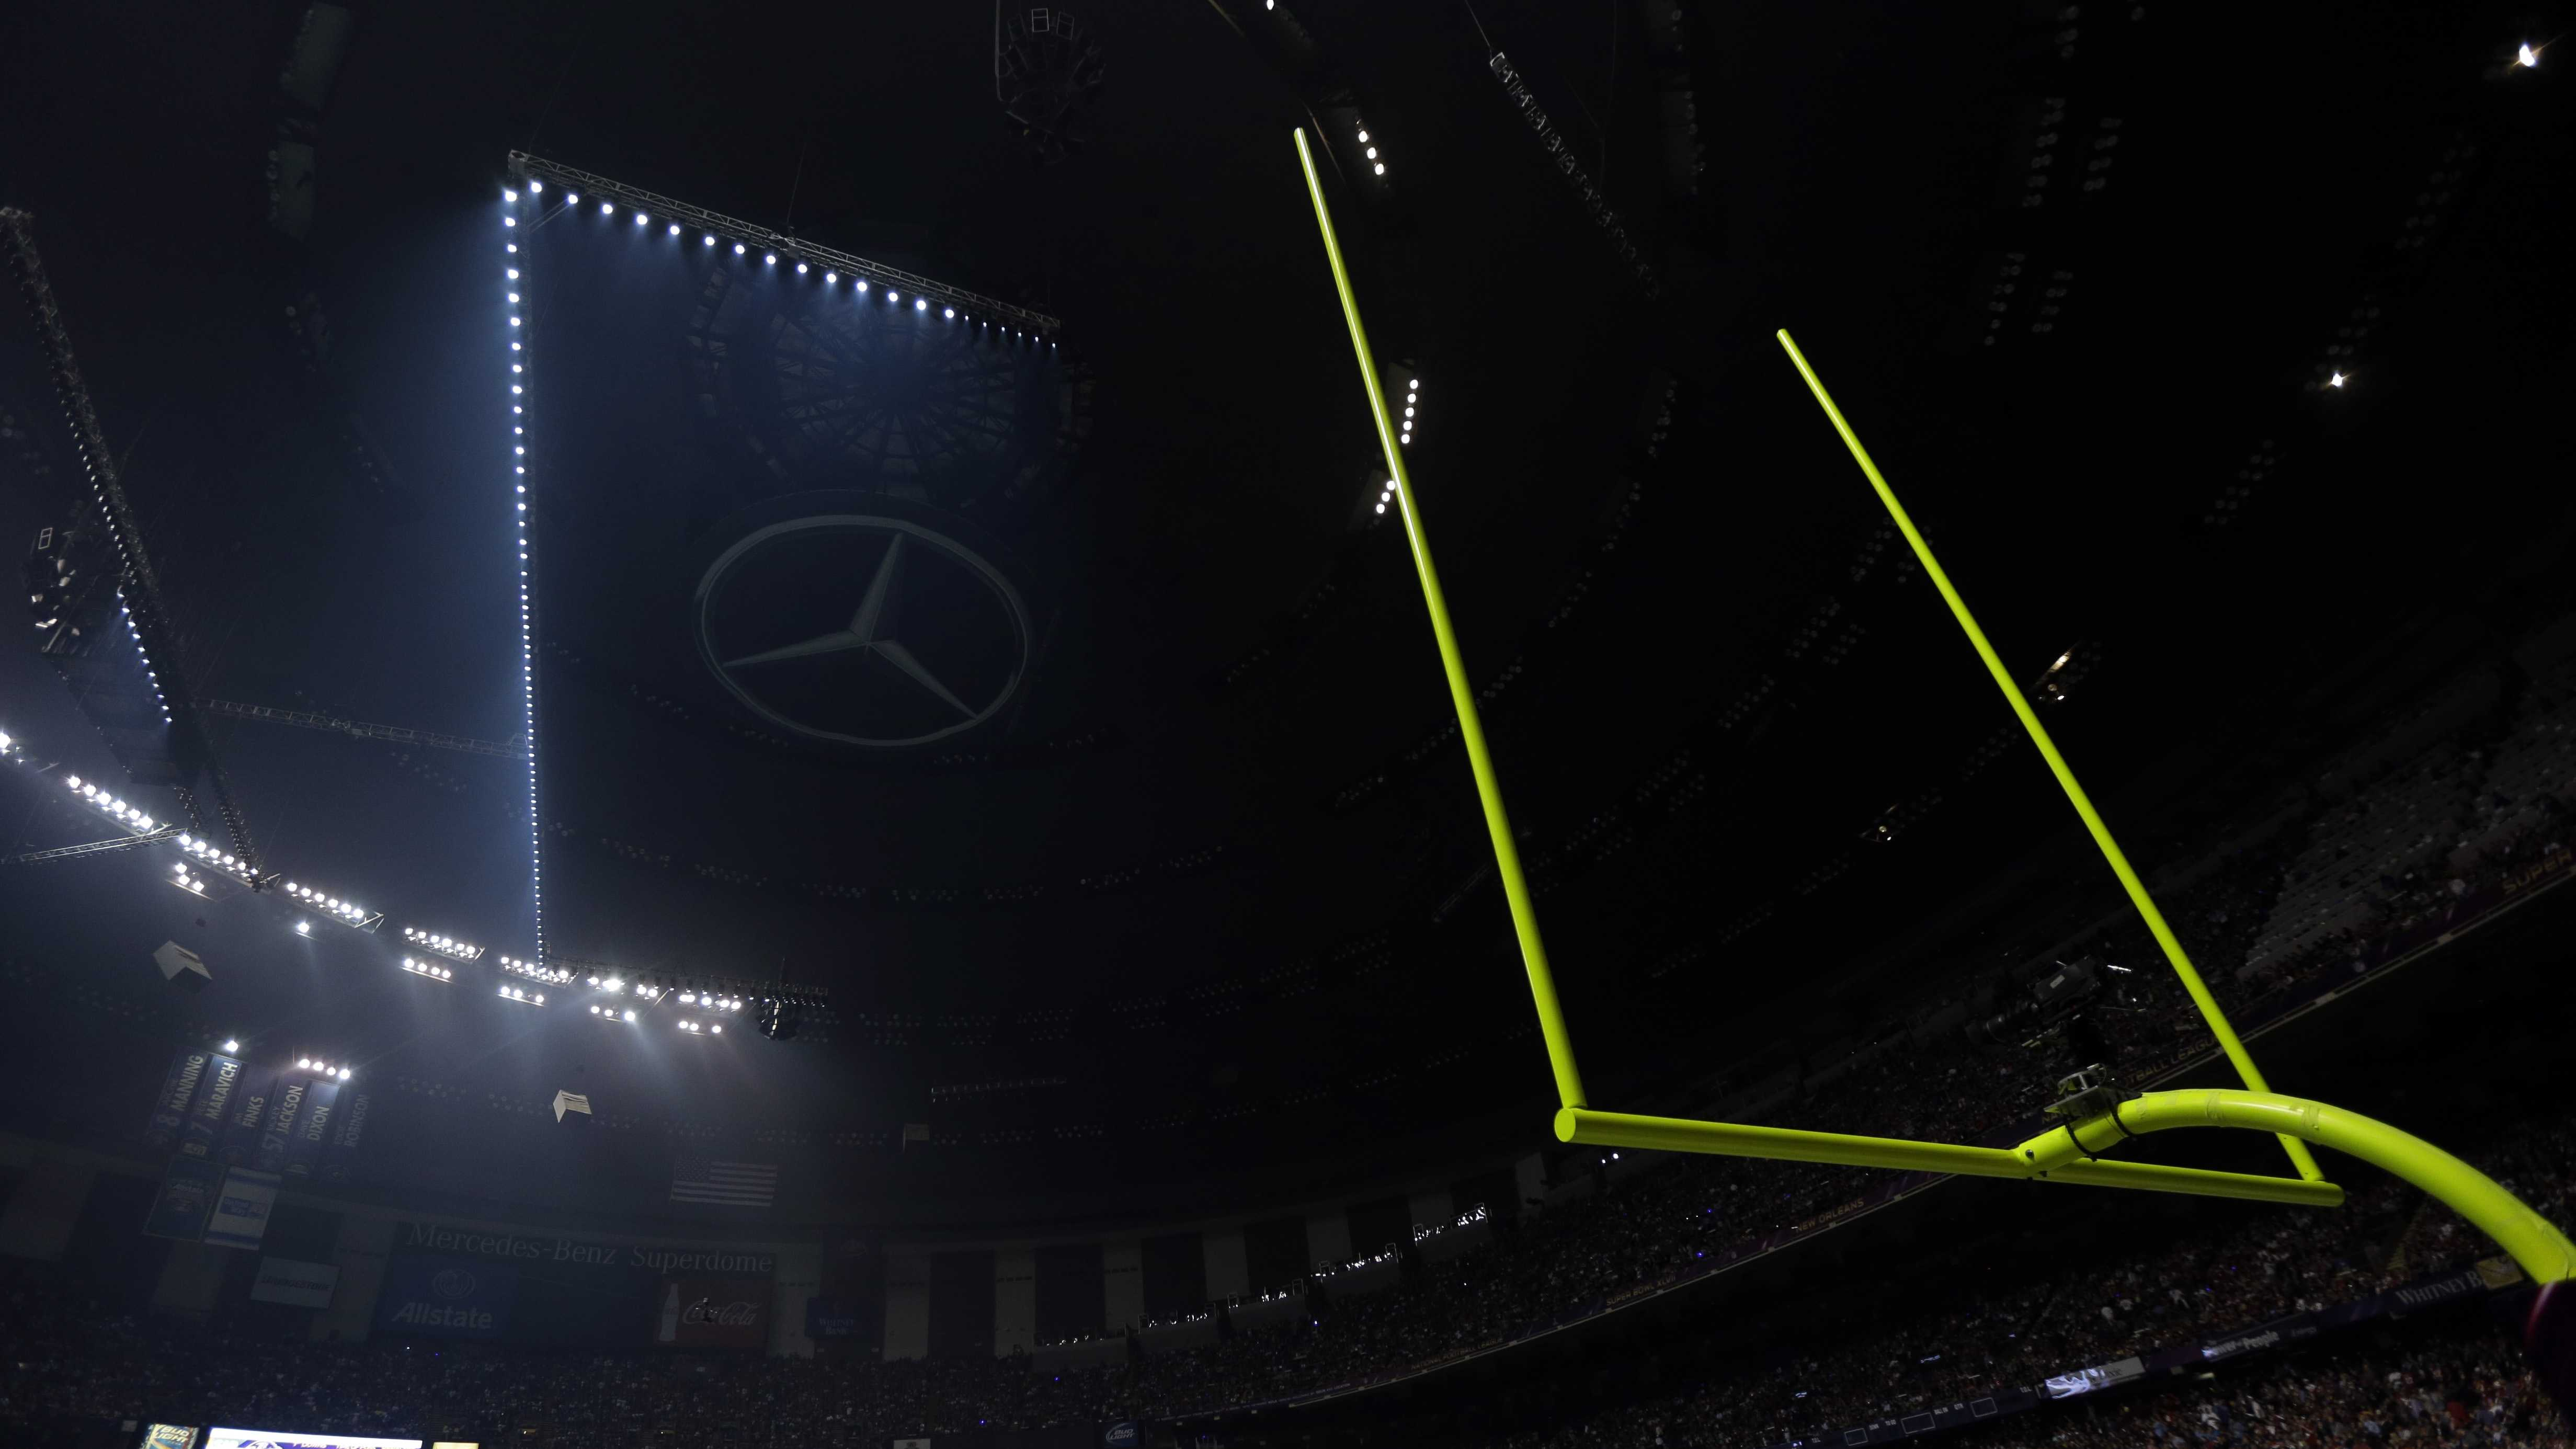 Half the lights are out in the Superdome during a power outage in the second half of the NFL Super Bowl XLVII football game.